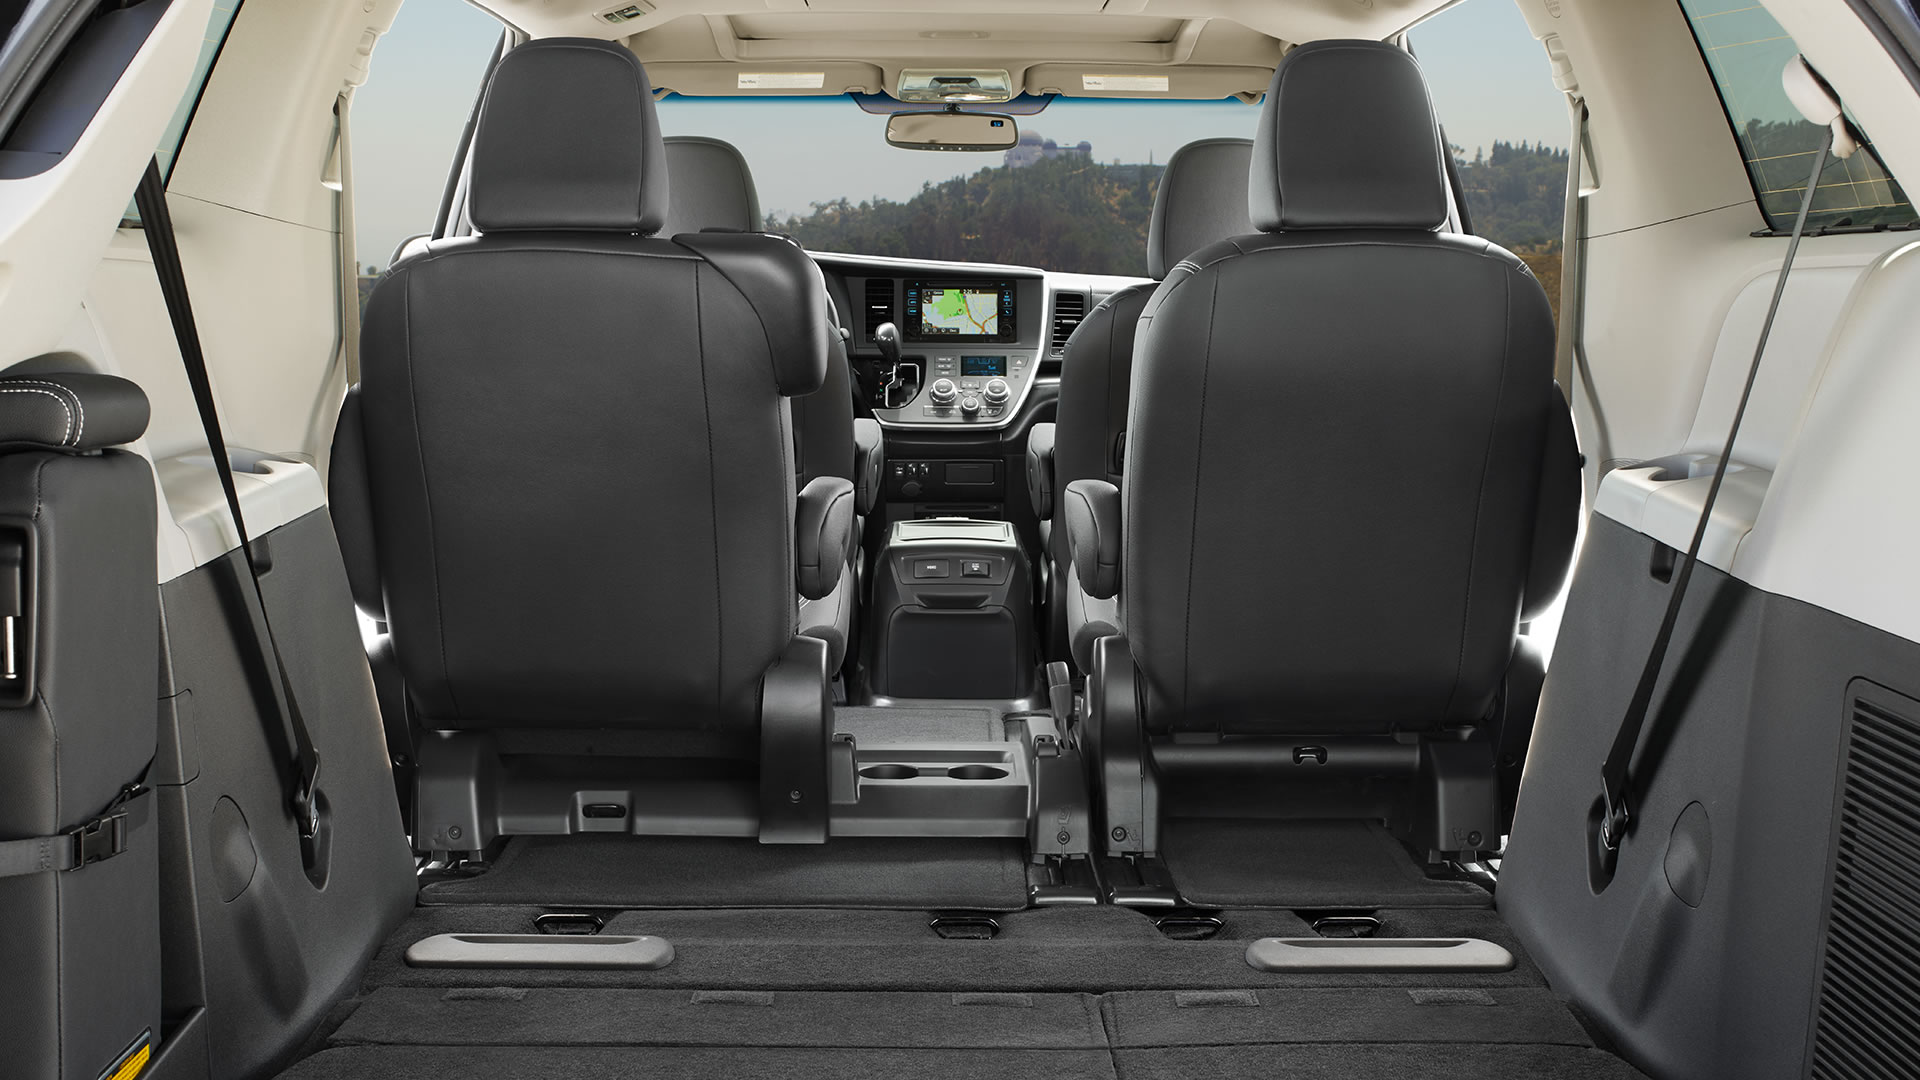 Toyota Sienna 2010-2018 Owners Manual: Using a flatbed truck